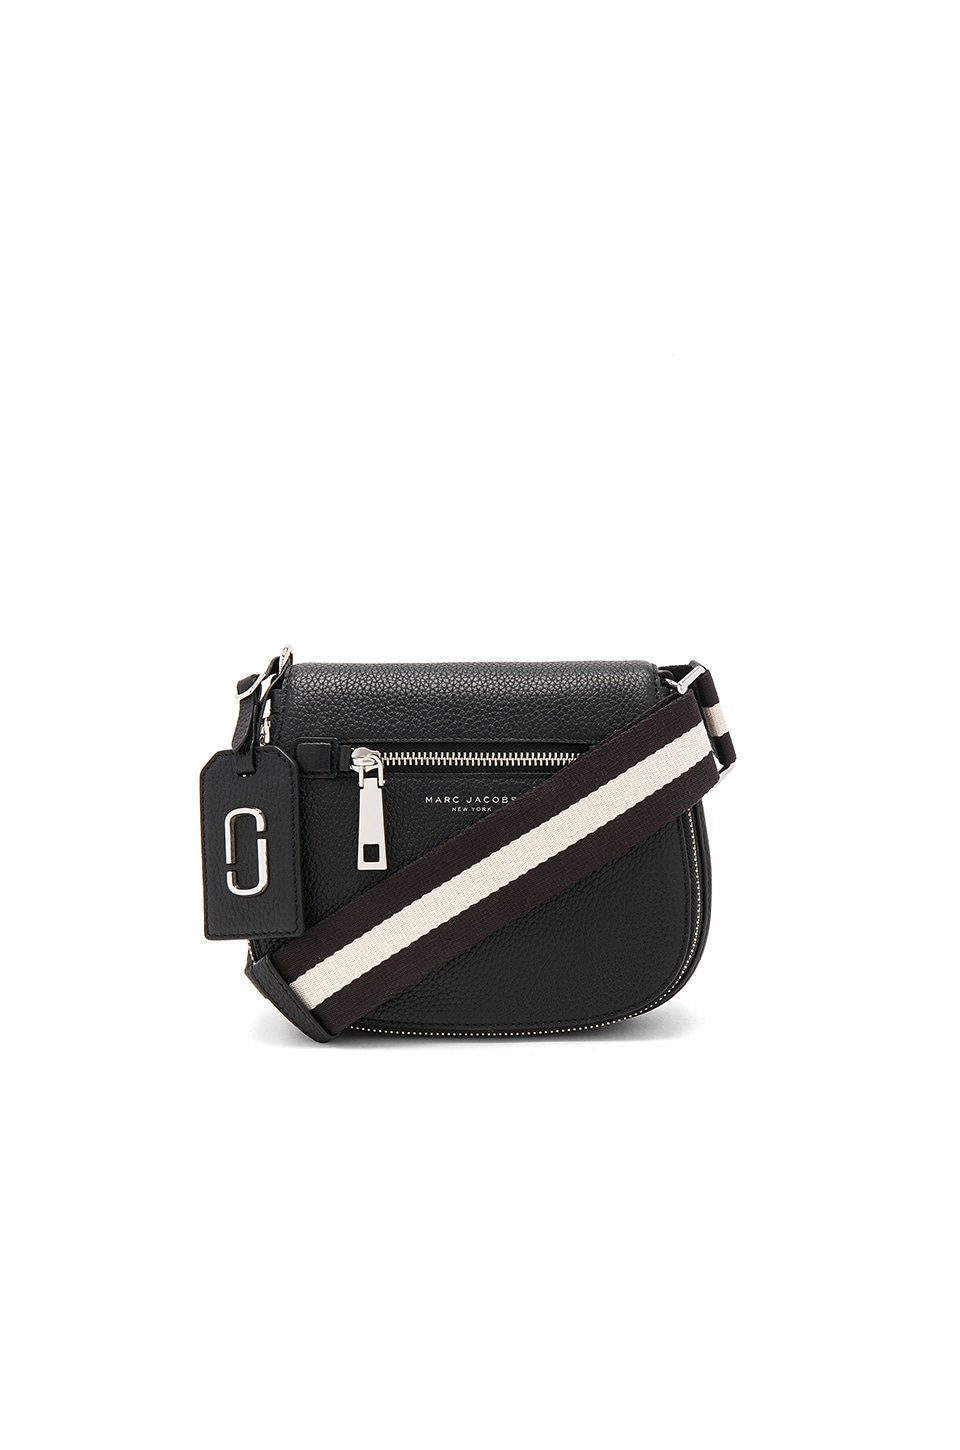 Gotham Small Nomad Shoulder Bag by Marc Jacobs